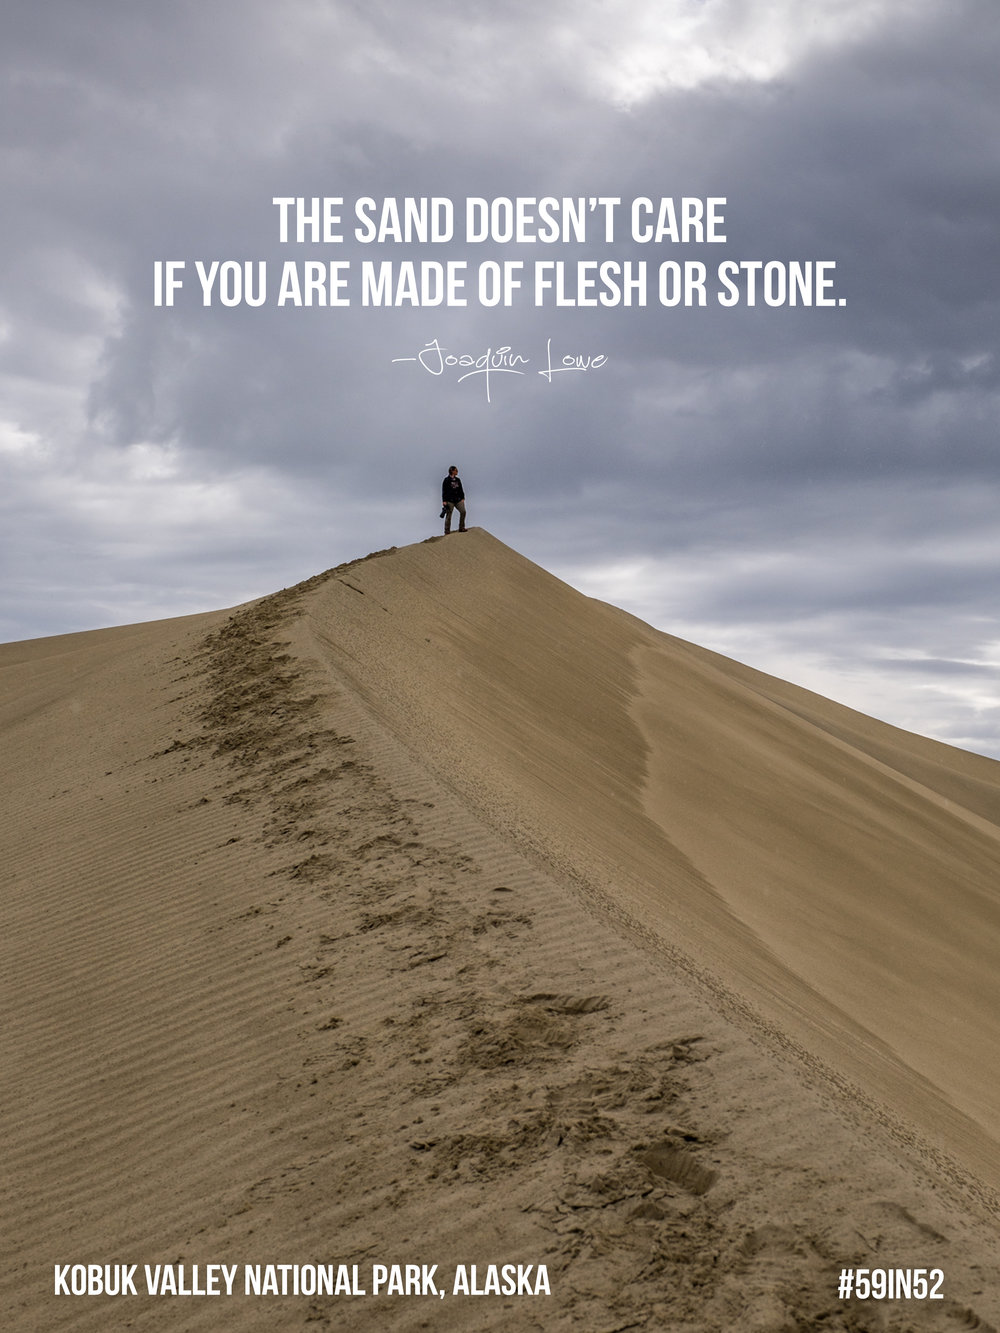 """The sand doesn't care if you are made of flesh or stone."" - Joaquin Lowe"